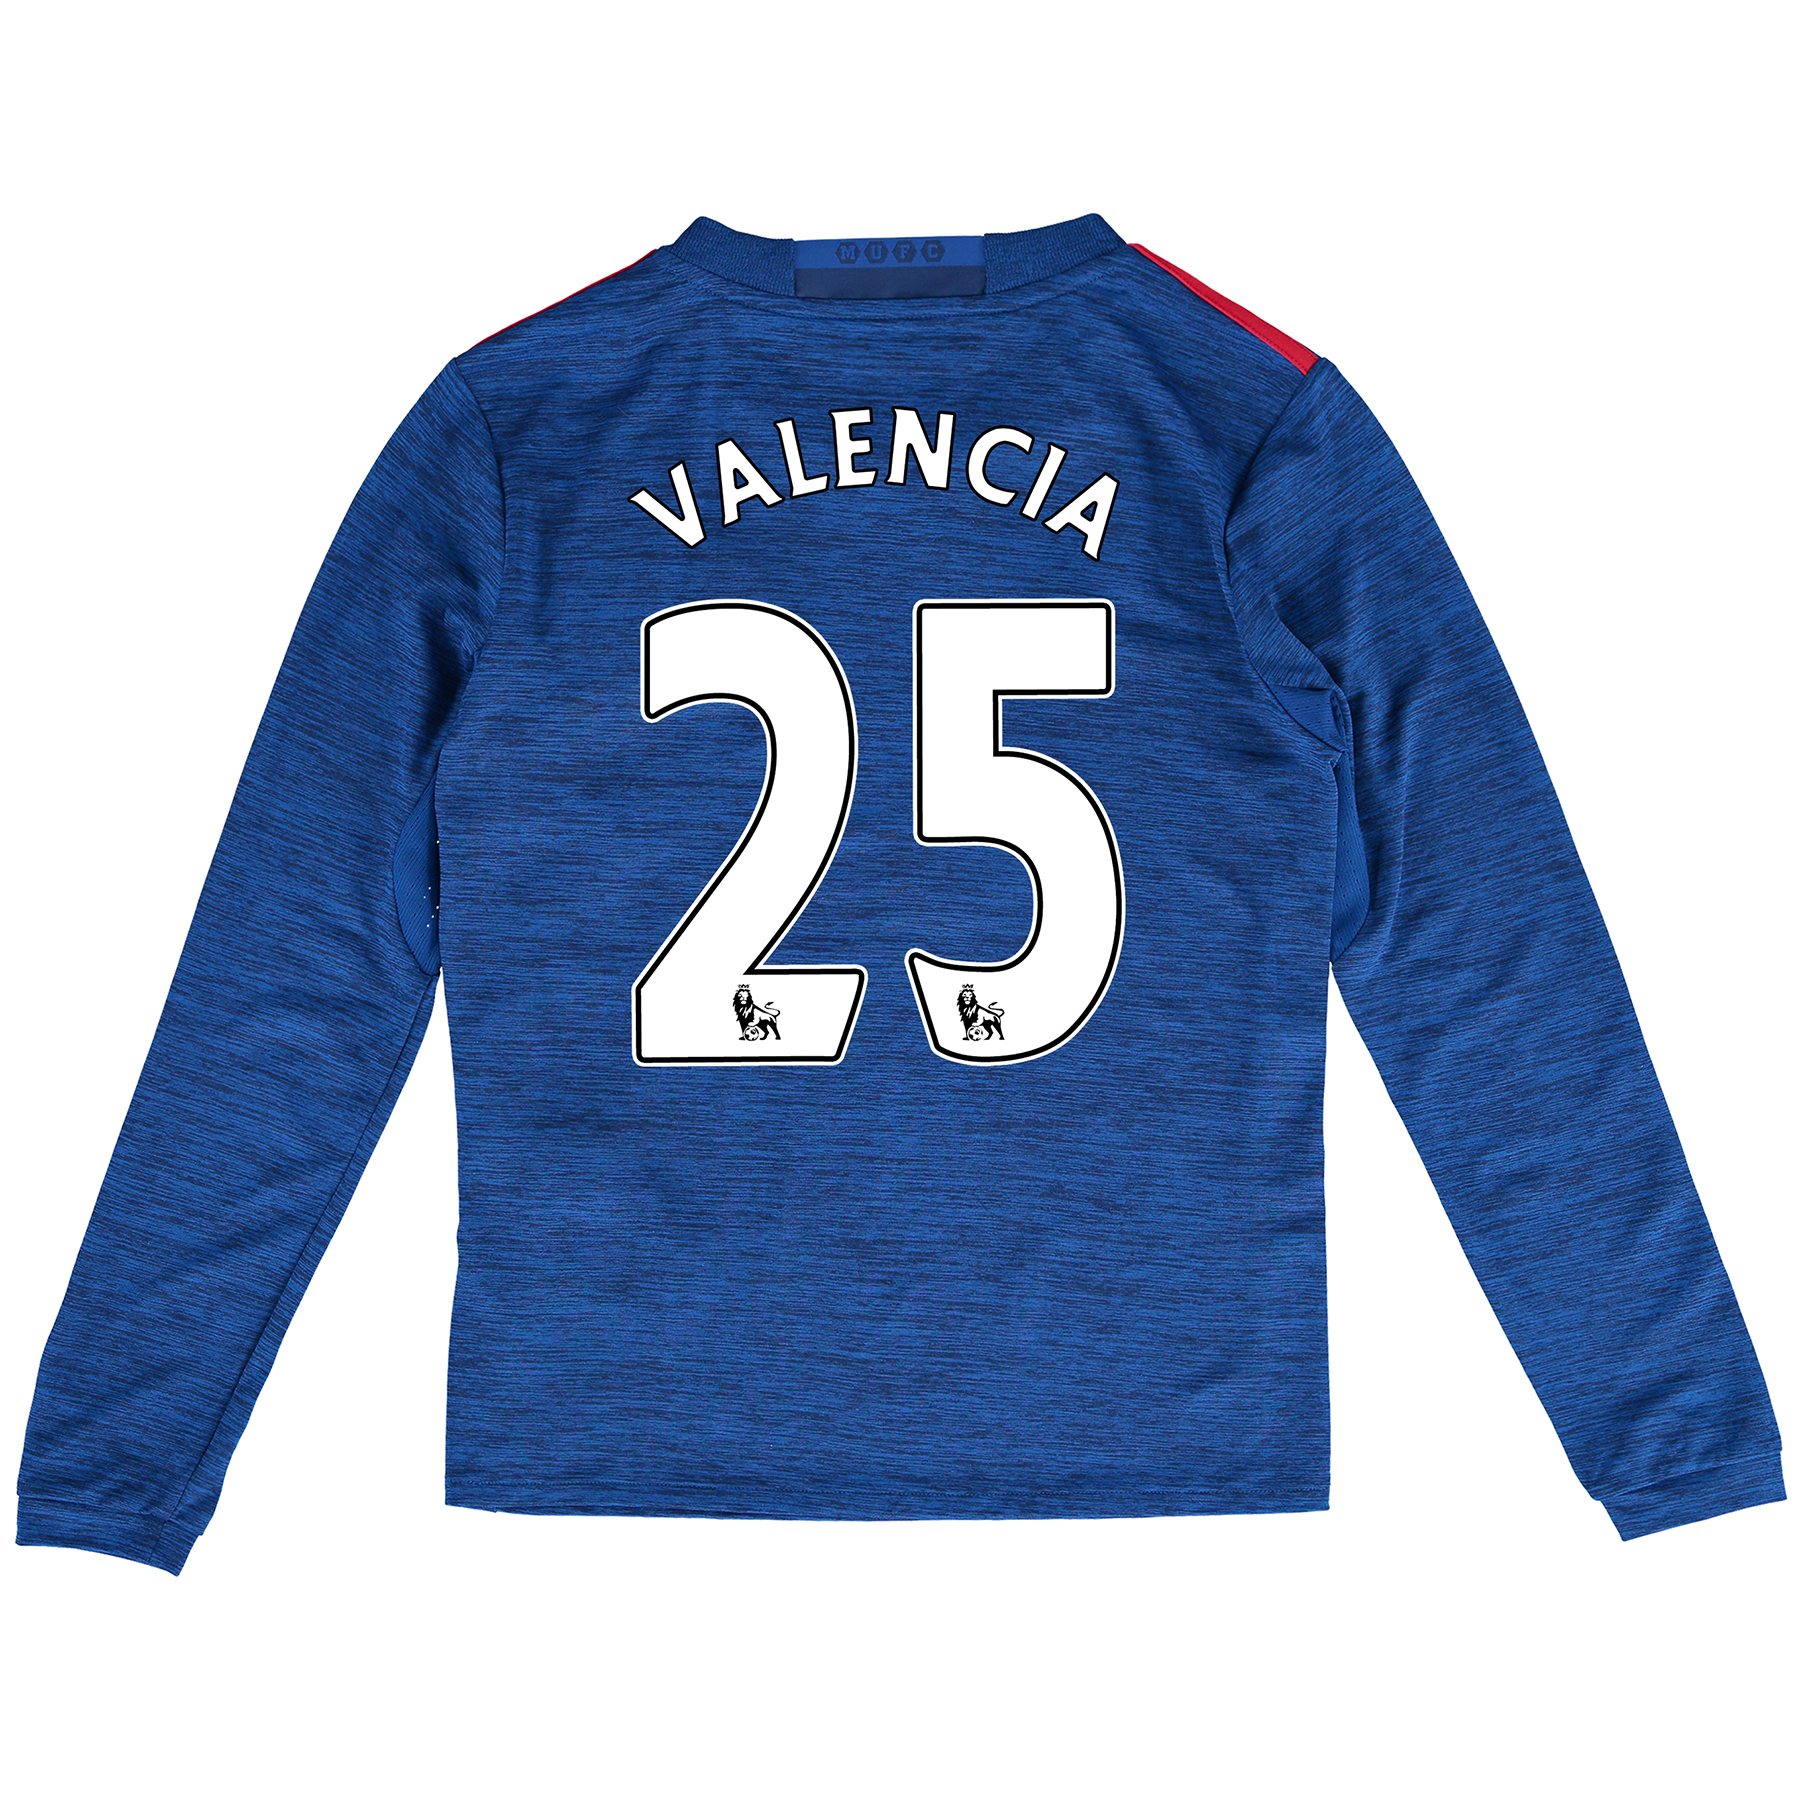 Manchester United Away Shirt 2016-17 - Kids - Long Sleeve with Valenci